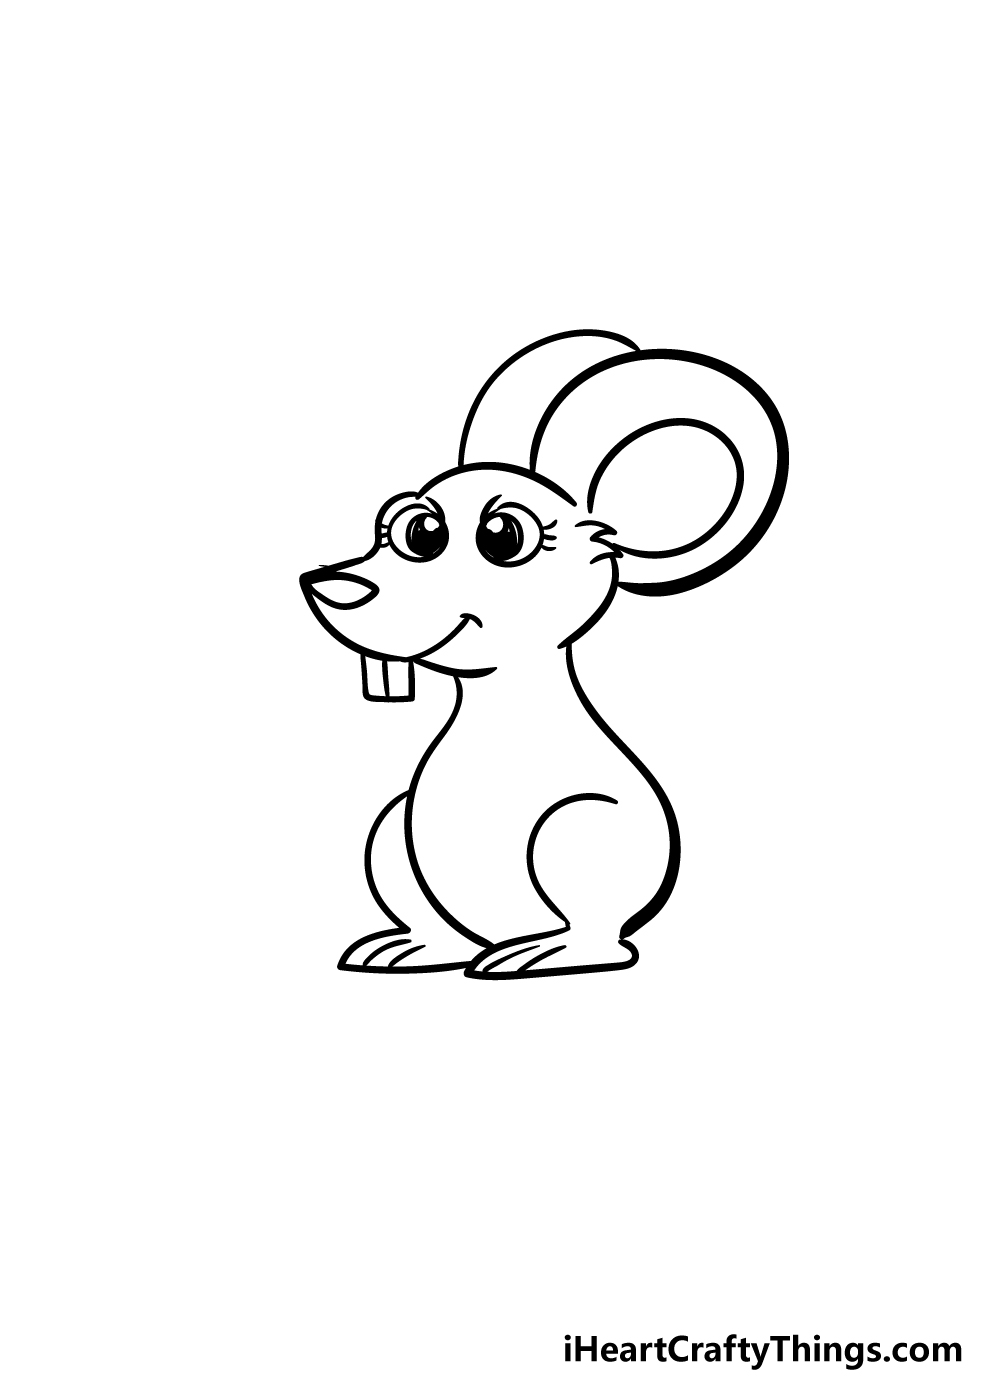 mouse drawing step 5